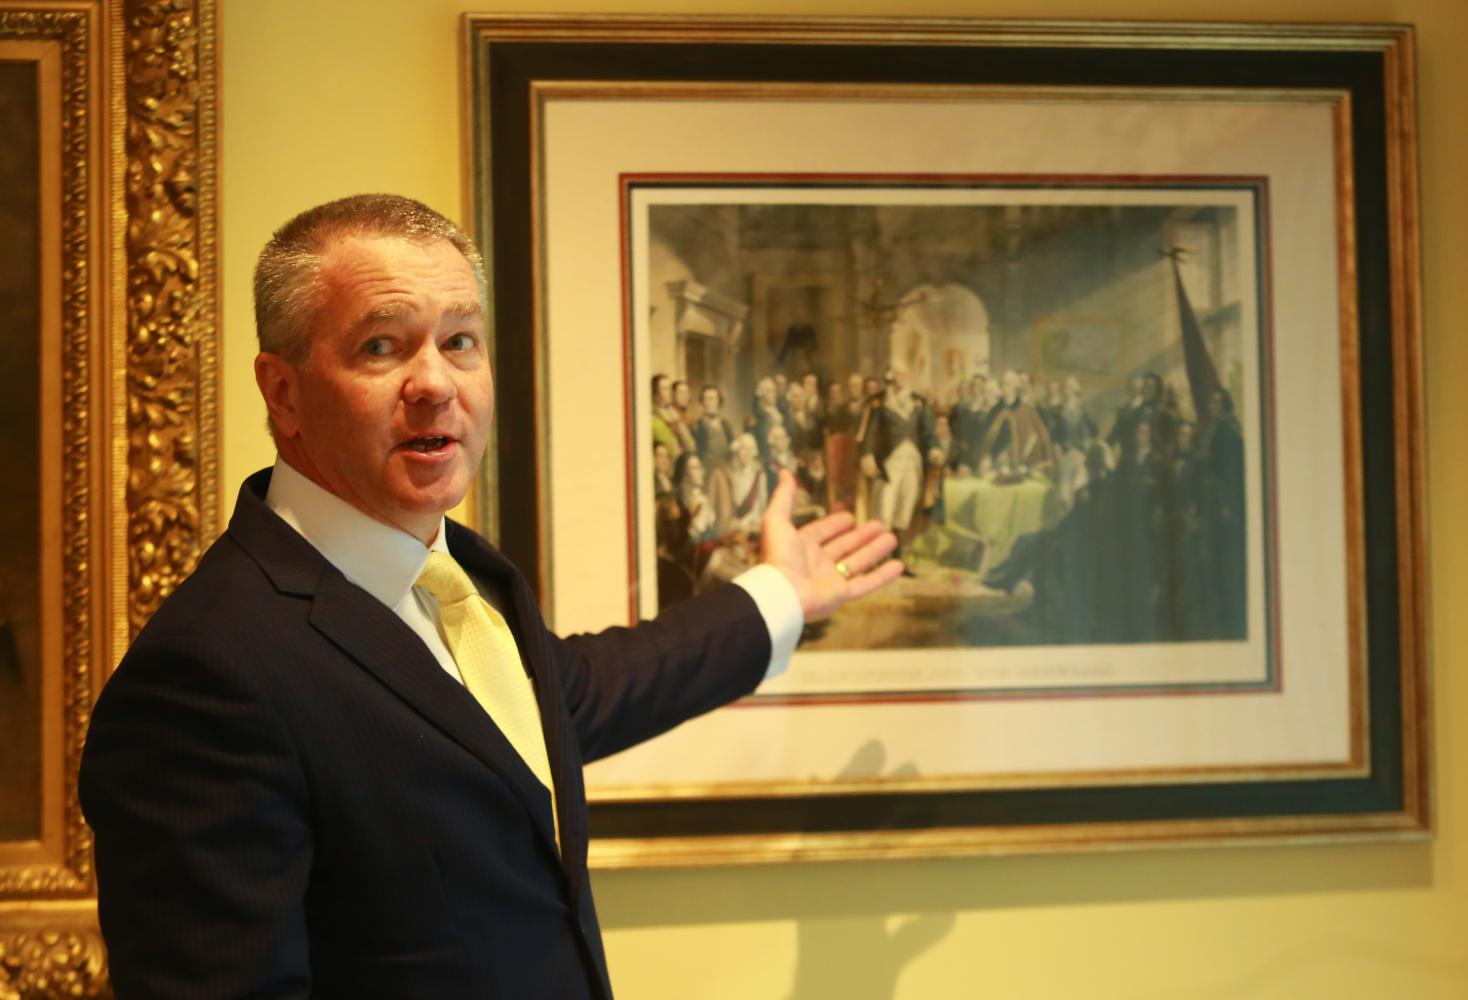 US Ambassador to Thailand, Michael George DeSombre, gestures toward a military painting — 'Washington and His Generals' — which shows General George Washington's farewell to his troops at Fraunces Tavern, New York City in 1783.(Photos: Somchai Poomlard)